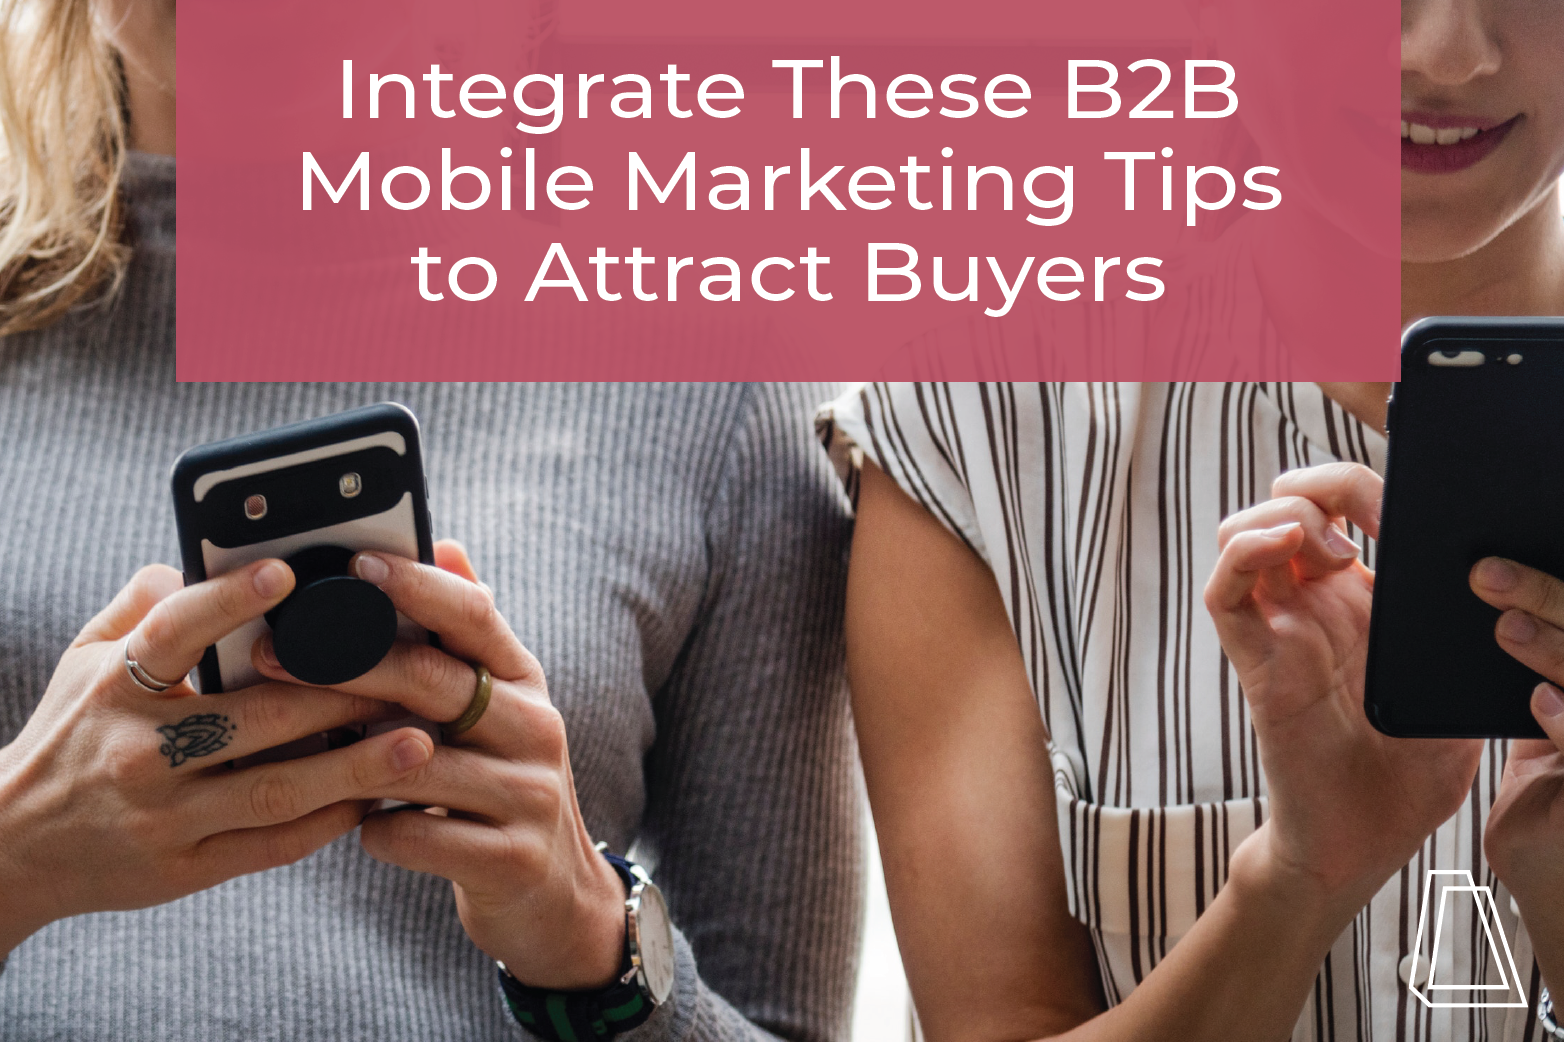 Integrate These B2B Mobile Marketing Tips to Attract Buyers